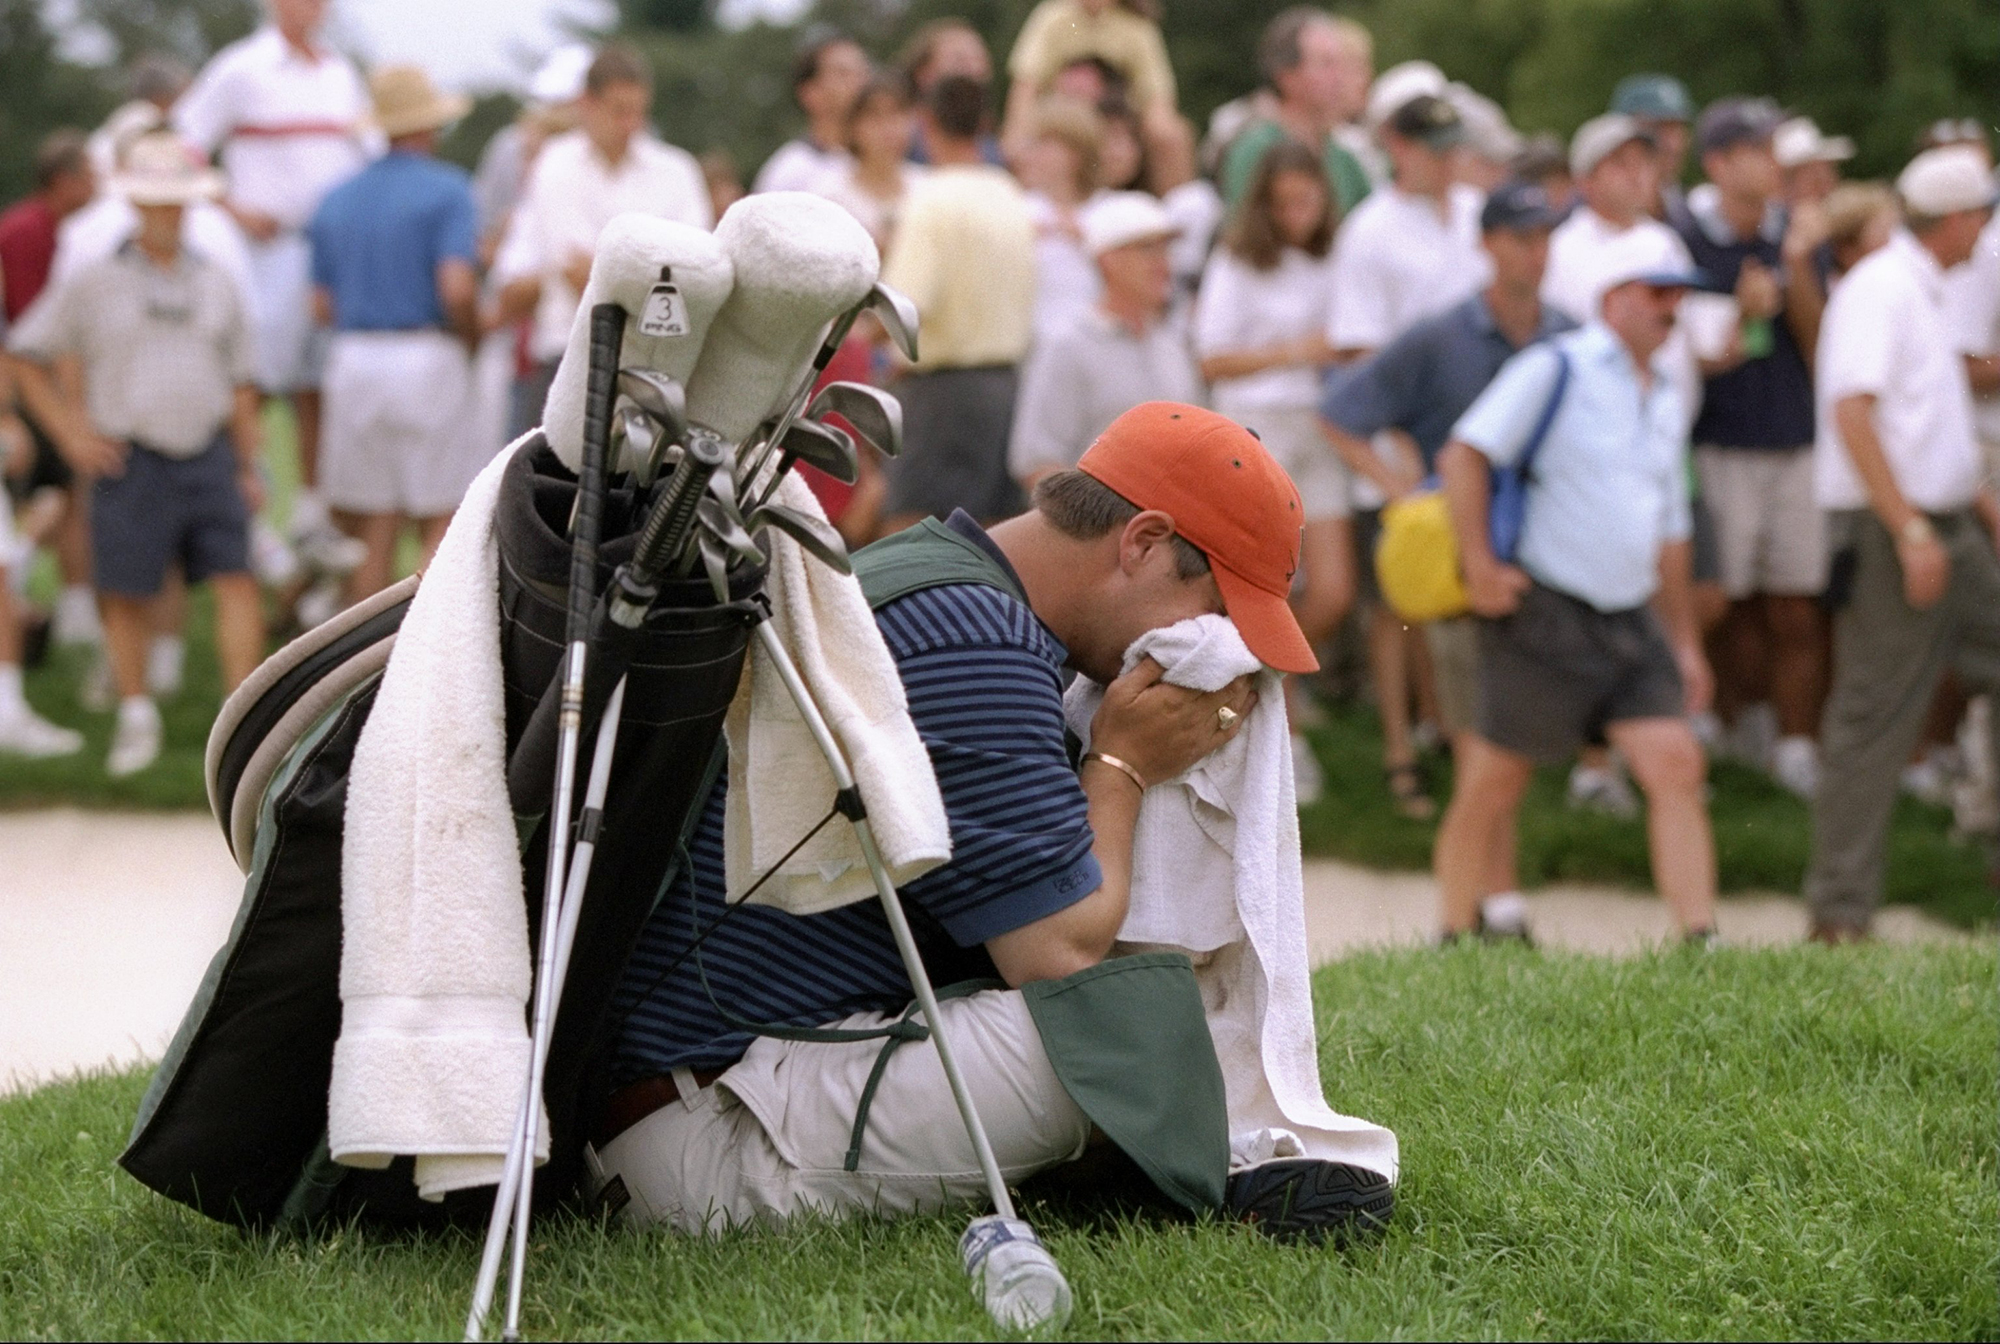 Is golf really in decline? (Photo: Getty Images)